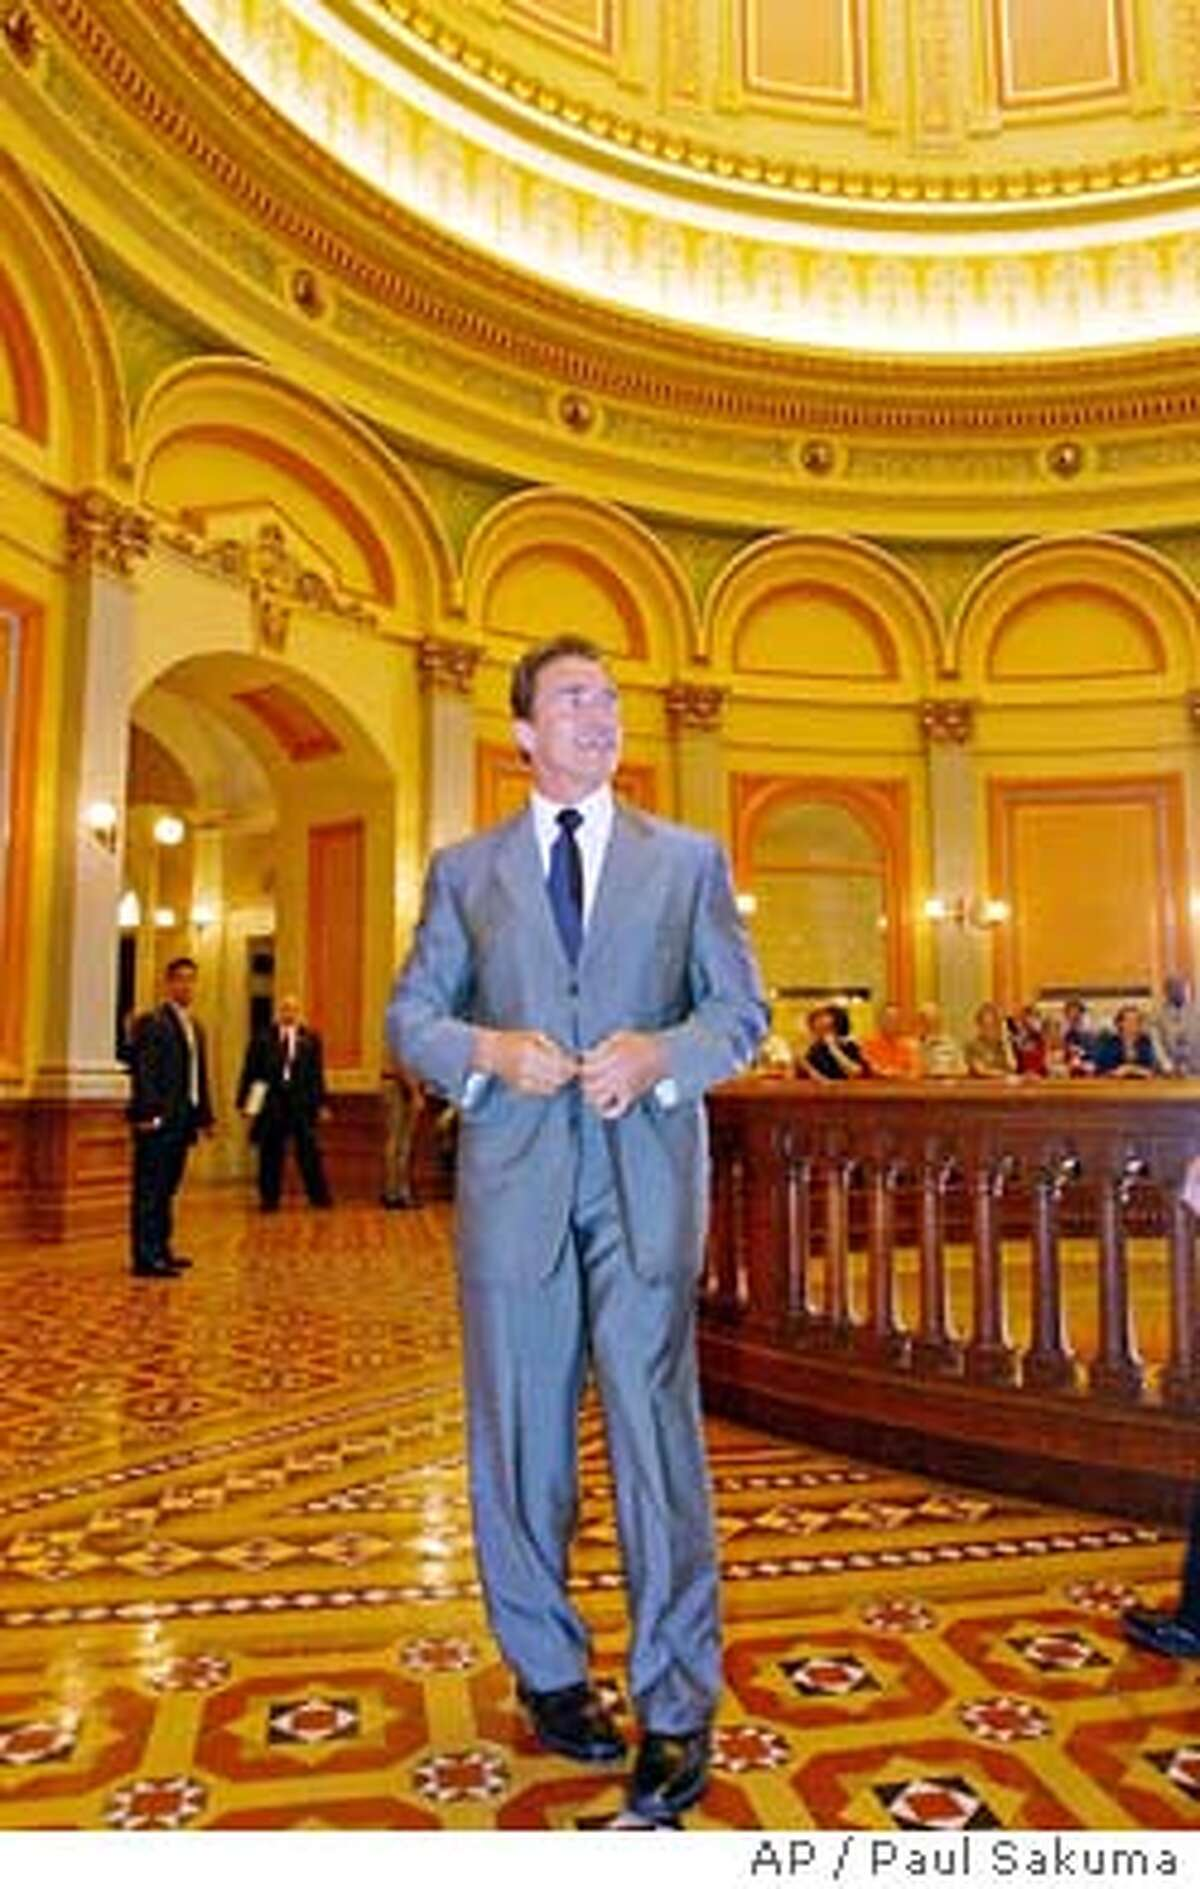 Gov.-elect Arnold Schwarzenegger walks through the rotunda of the state Capitol during a visit to legislators in Sacramento, Calif., Wednesday, Oct. 22, 2003. Schwarzenegger used his first official visit to the state Capitol Wednesday to name a health care executive and former aide to Republican former Gov. Pete Wilson as his new chief of staff. (AP Photo/Paul Sakuma)